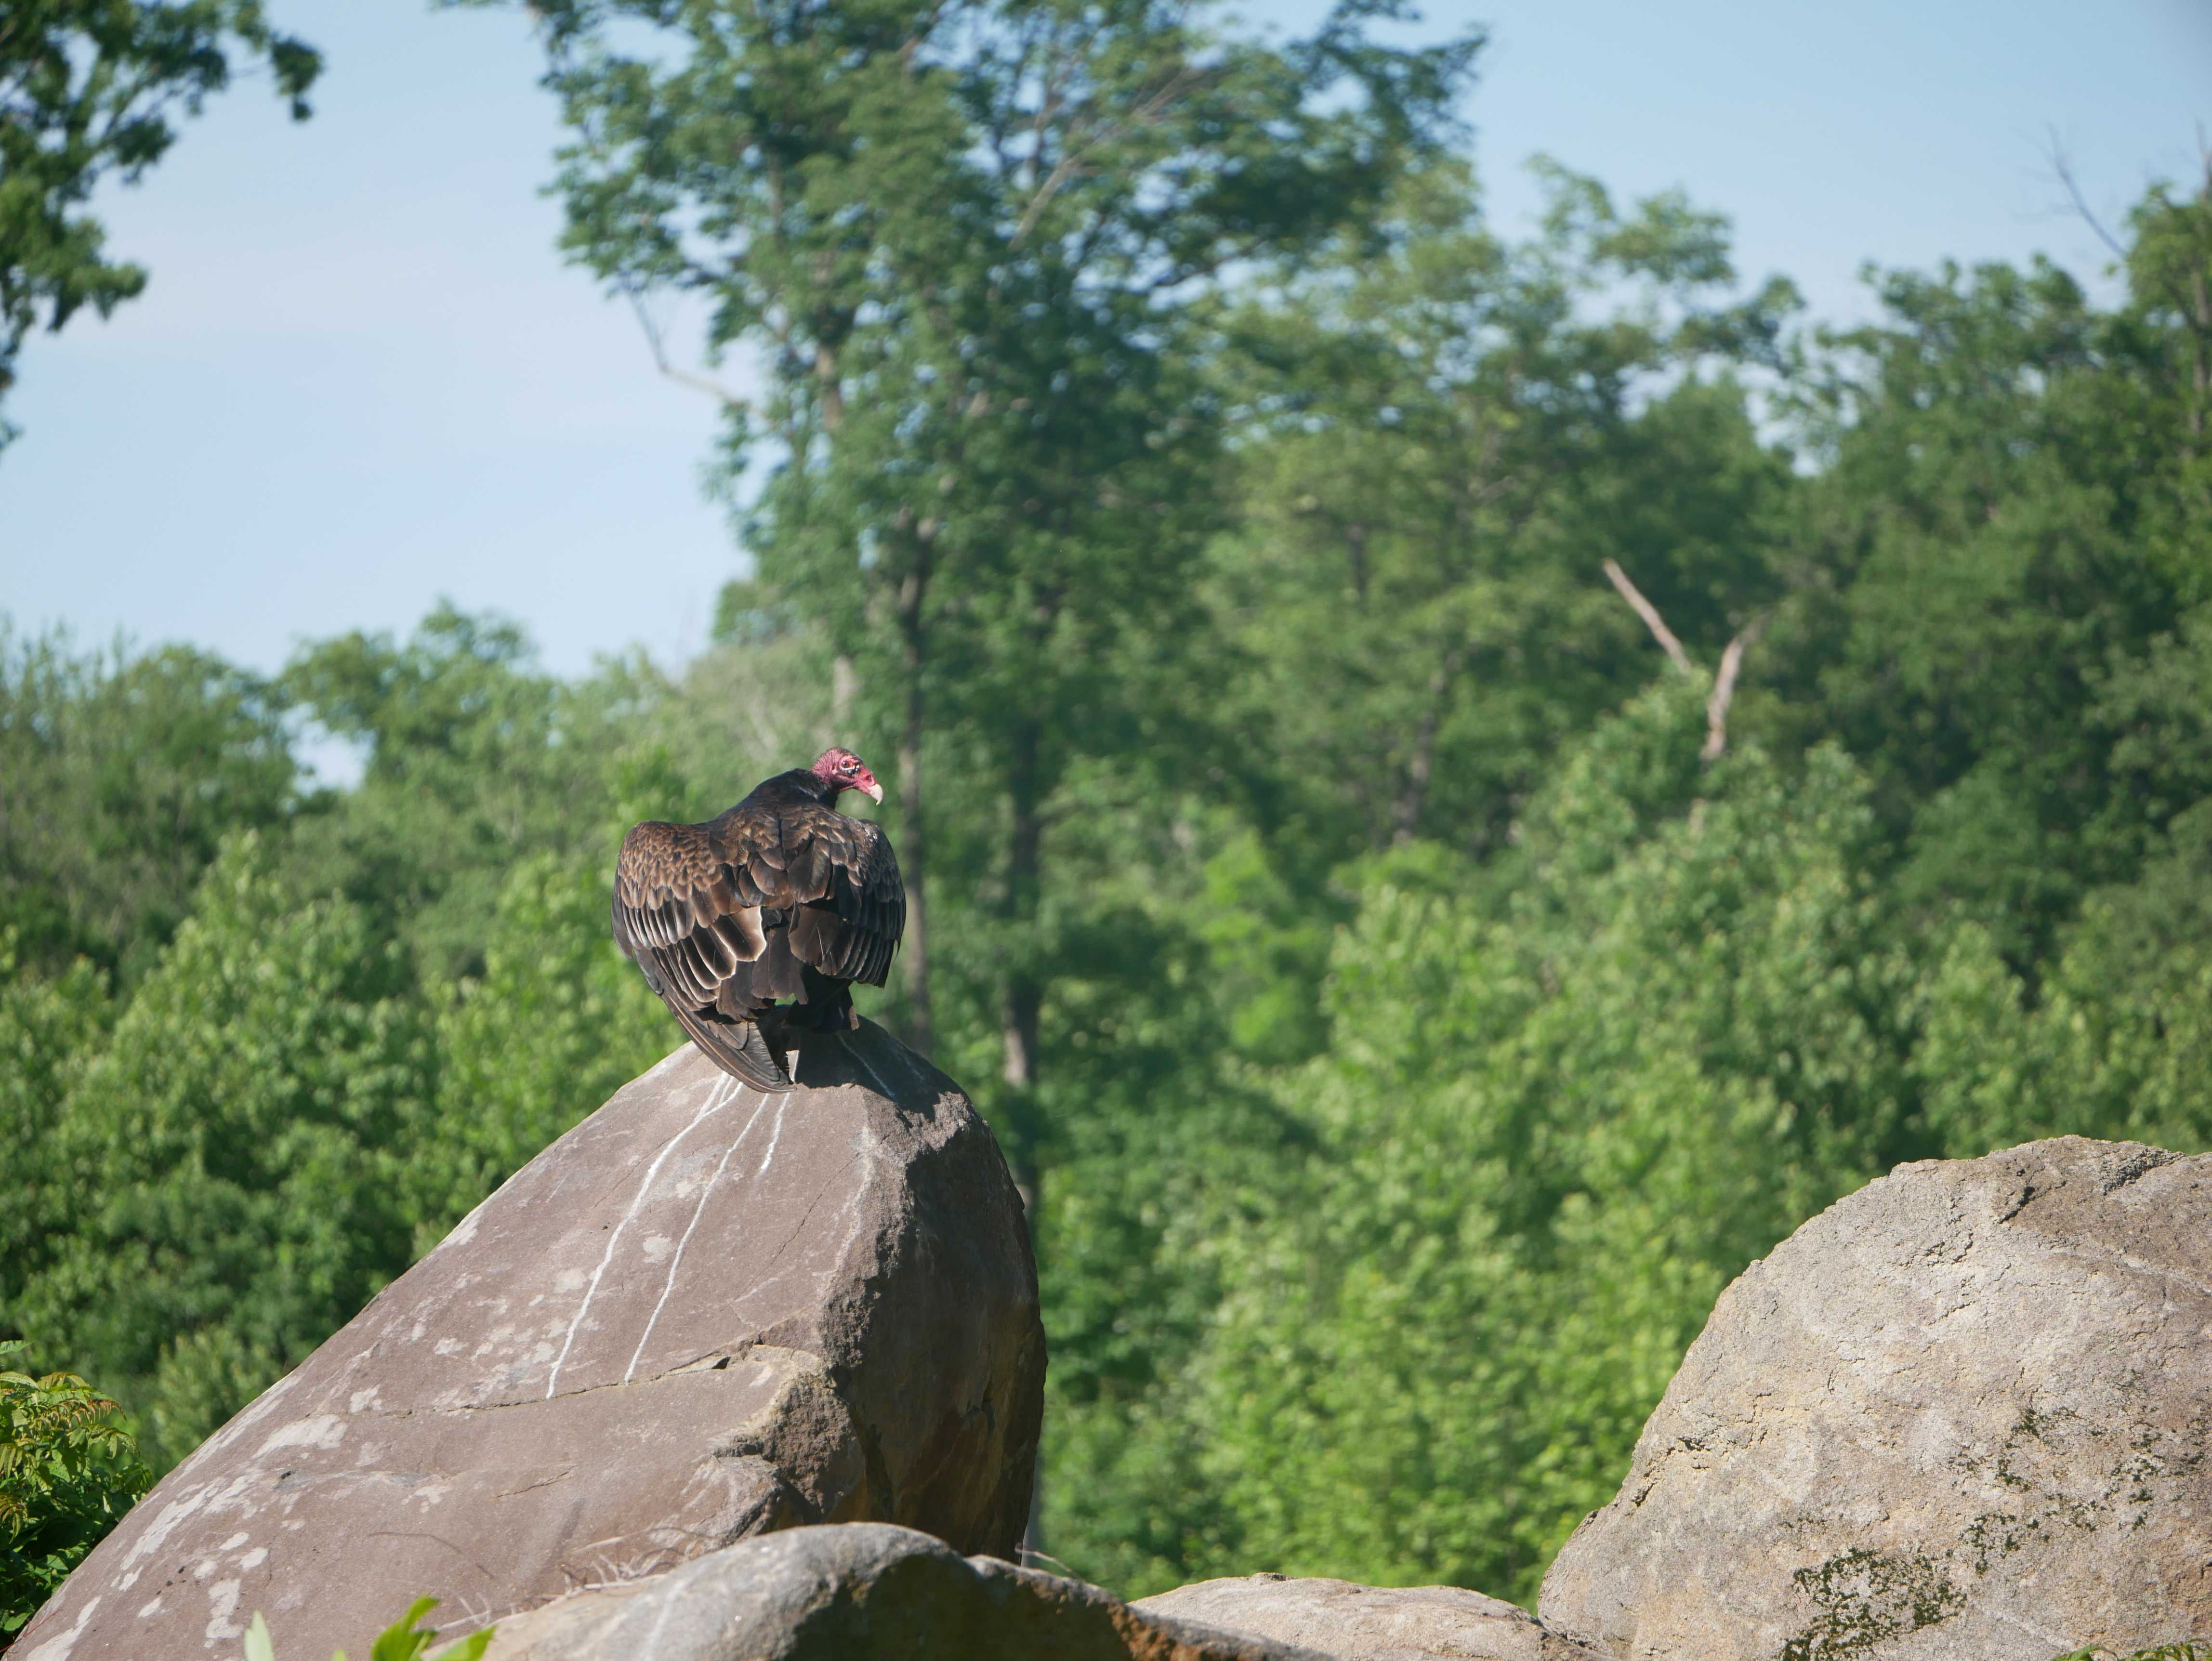 A majestic turkey vulture, perched on a rock.